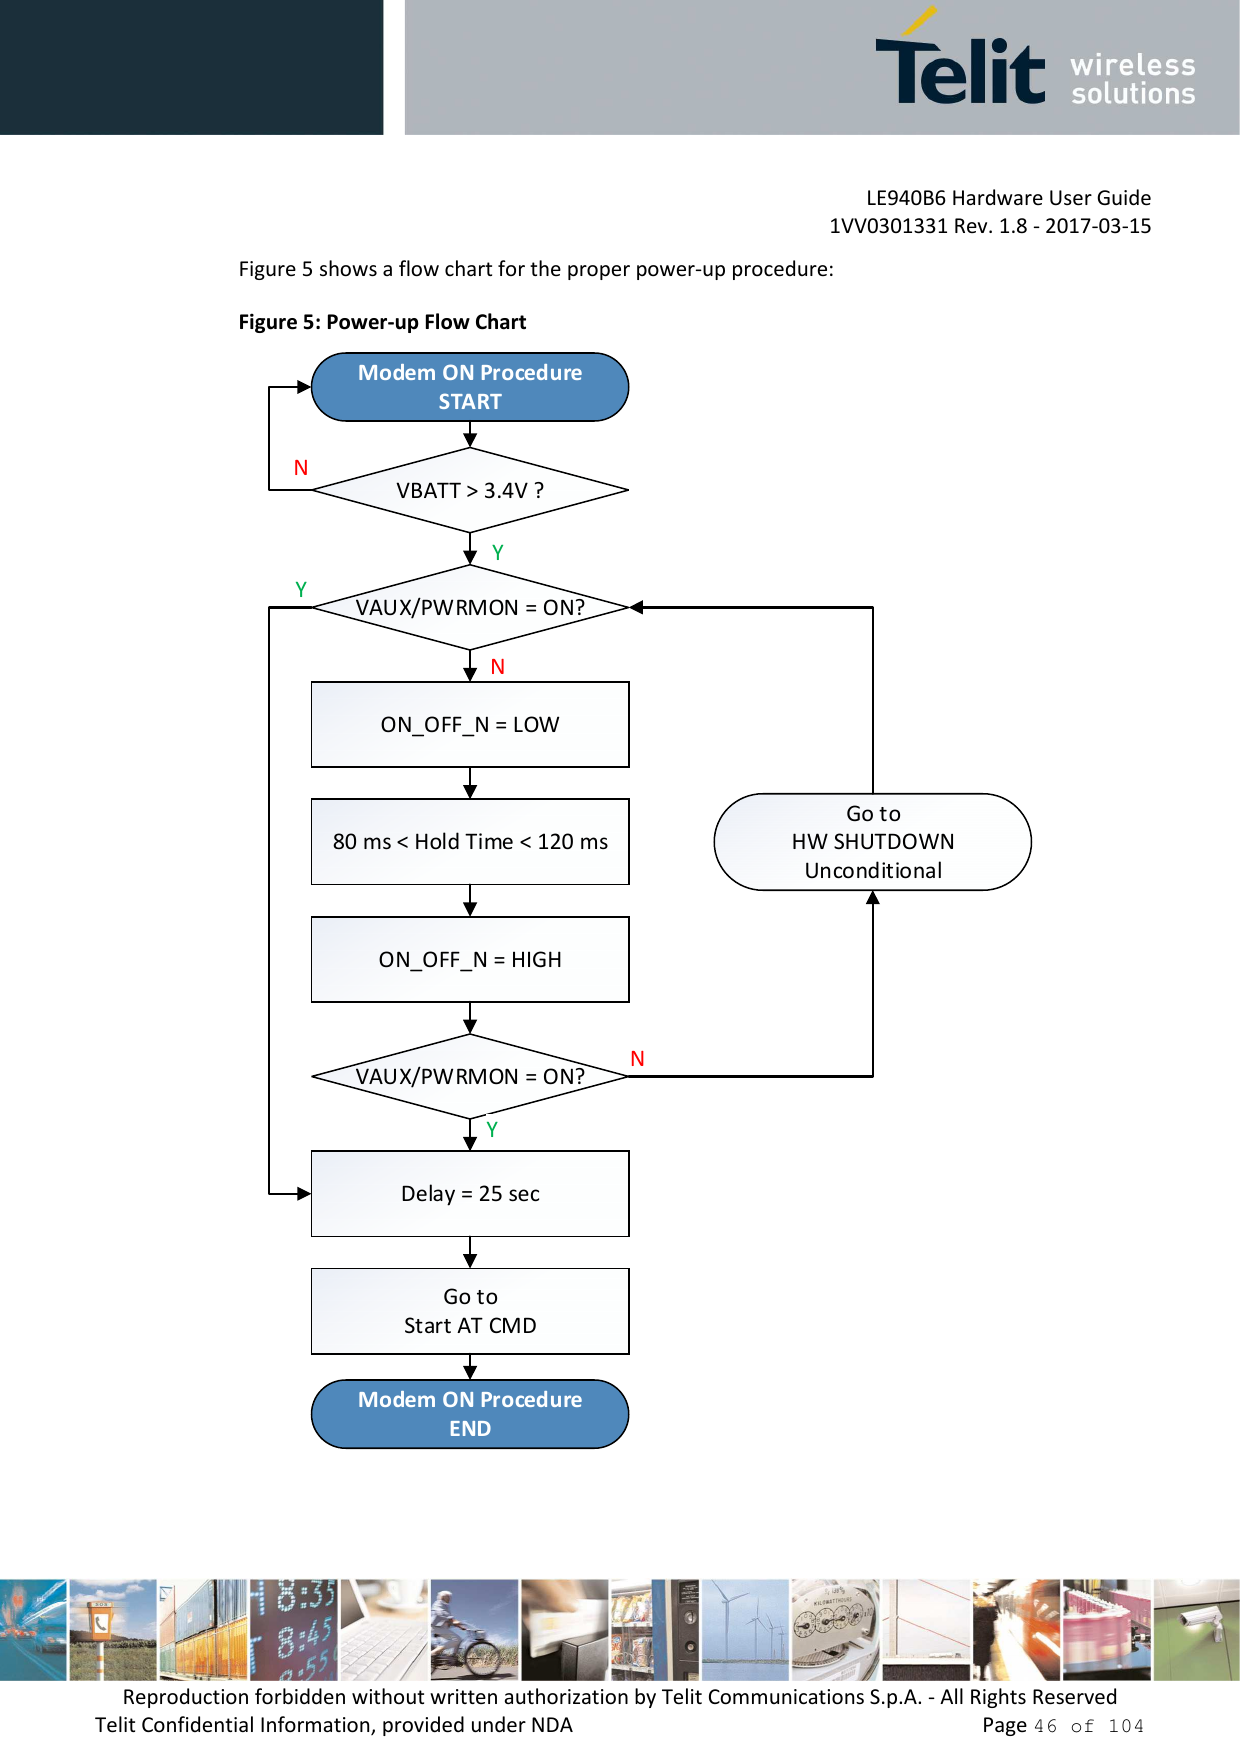 LE940B6 Hardware User Guide     1VV0301331 Rev. 1.8 - 2017-03-15 Reproduction forbidden without written authorization by Telit Communications S.p.A. - All Rights Reserved Telit Confidential Information, provided under NDA                 Page 46 of 104 Figure 5 shows a flow chart for the proper power-up procedure:  Figure 5: Power-up Flow Chart Modem ON ProcedureSTARTVBATT > 3.4V ?VAUX/PWRMON = ON?ON_OFF_N = LOW80 ms < Hold Time < 120 msON_OFF_N = HIGHVAUX/PWRMON = ON?Delay = 25 secGo toStart AT CMDModem ON ProcedureENDNYYNGo toHW SHUTDOWNUnconditionalNY